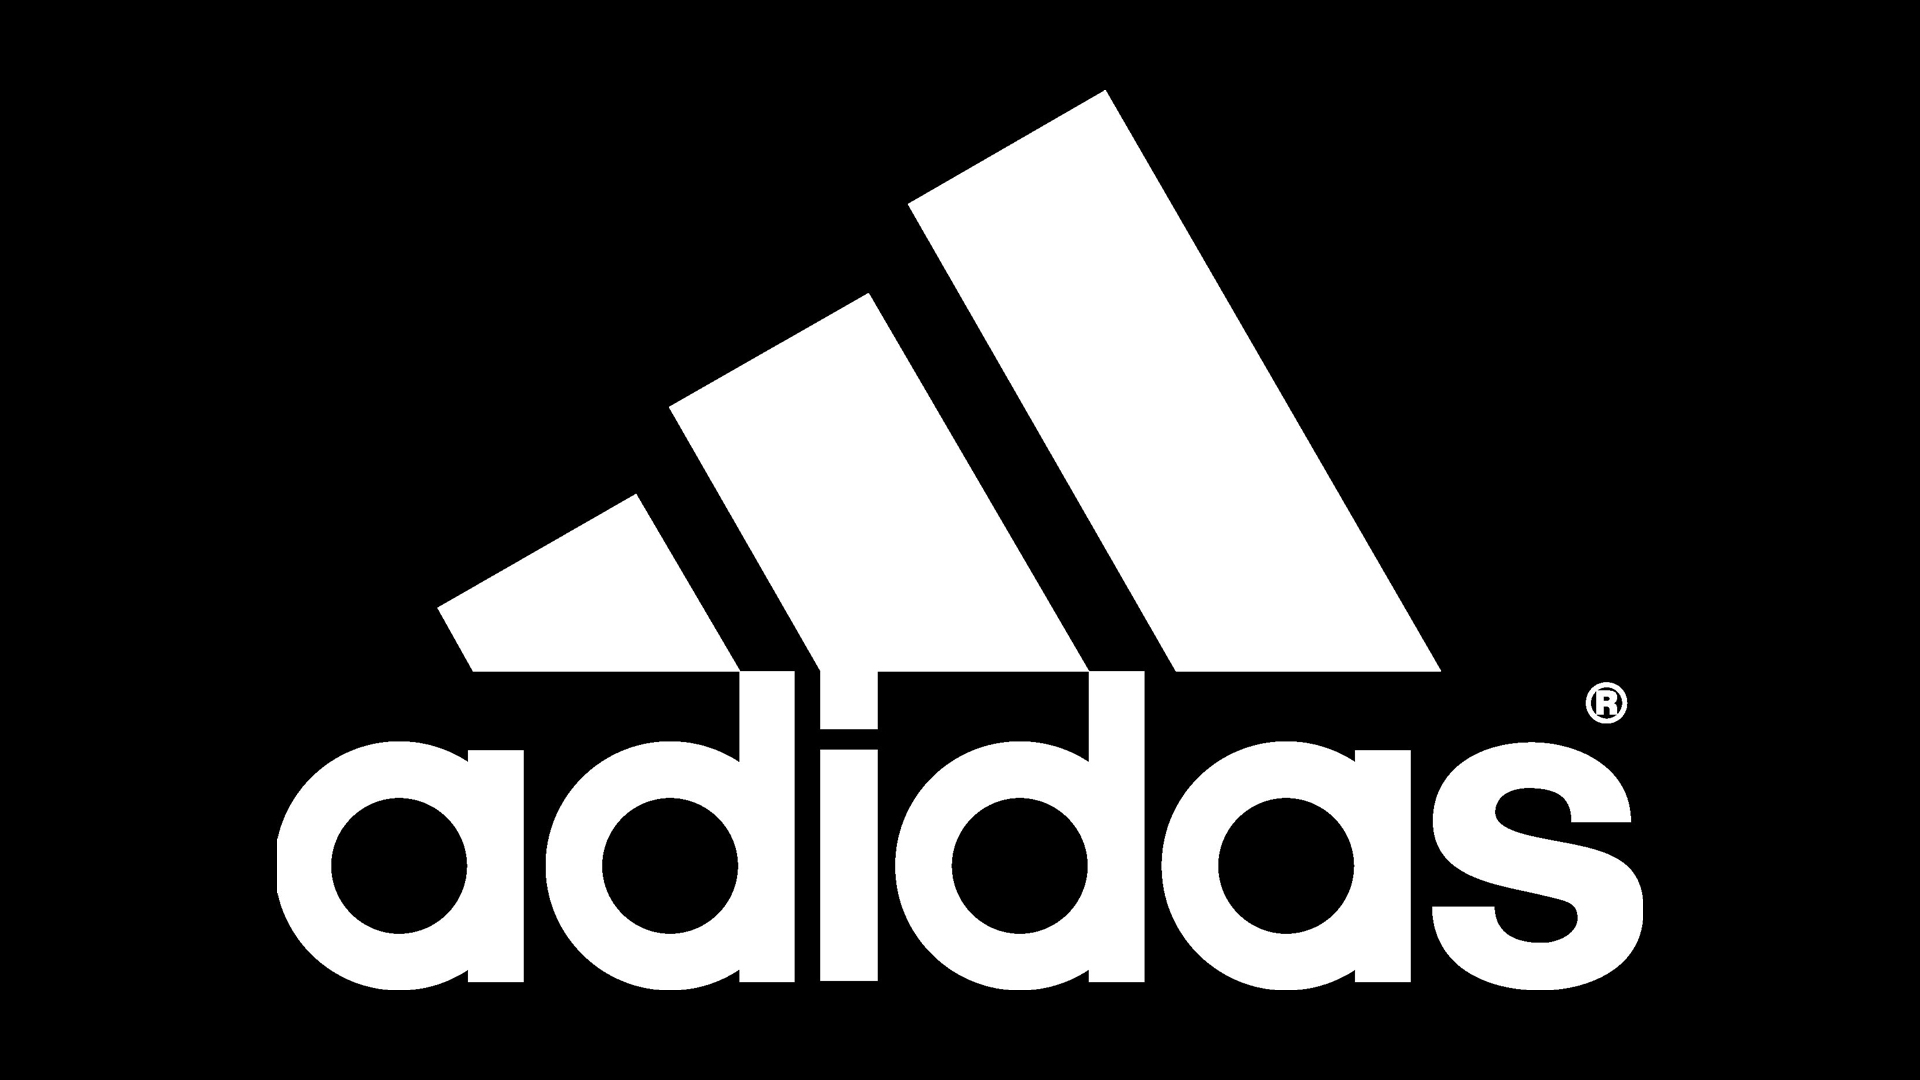 ... логотип Adidas, Adidas logo (Адидас логотип: www.fullhdoboi.ru/photo/brands/logotip_adidas/31-0-6018